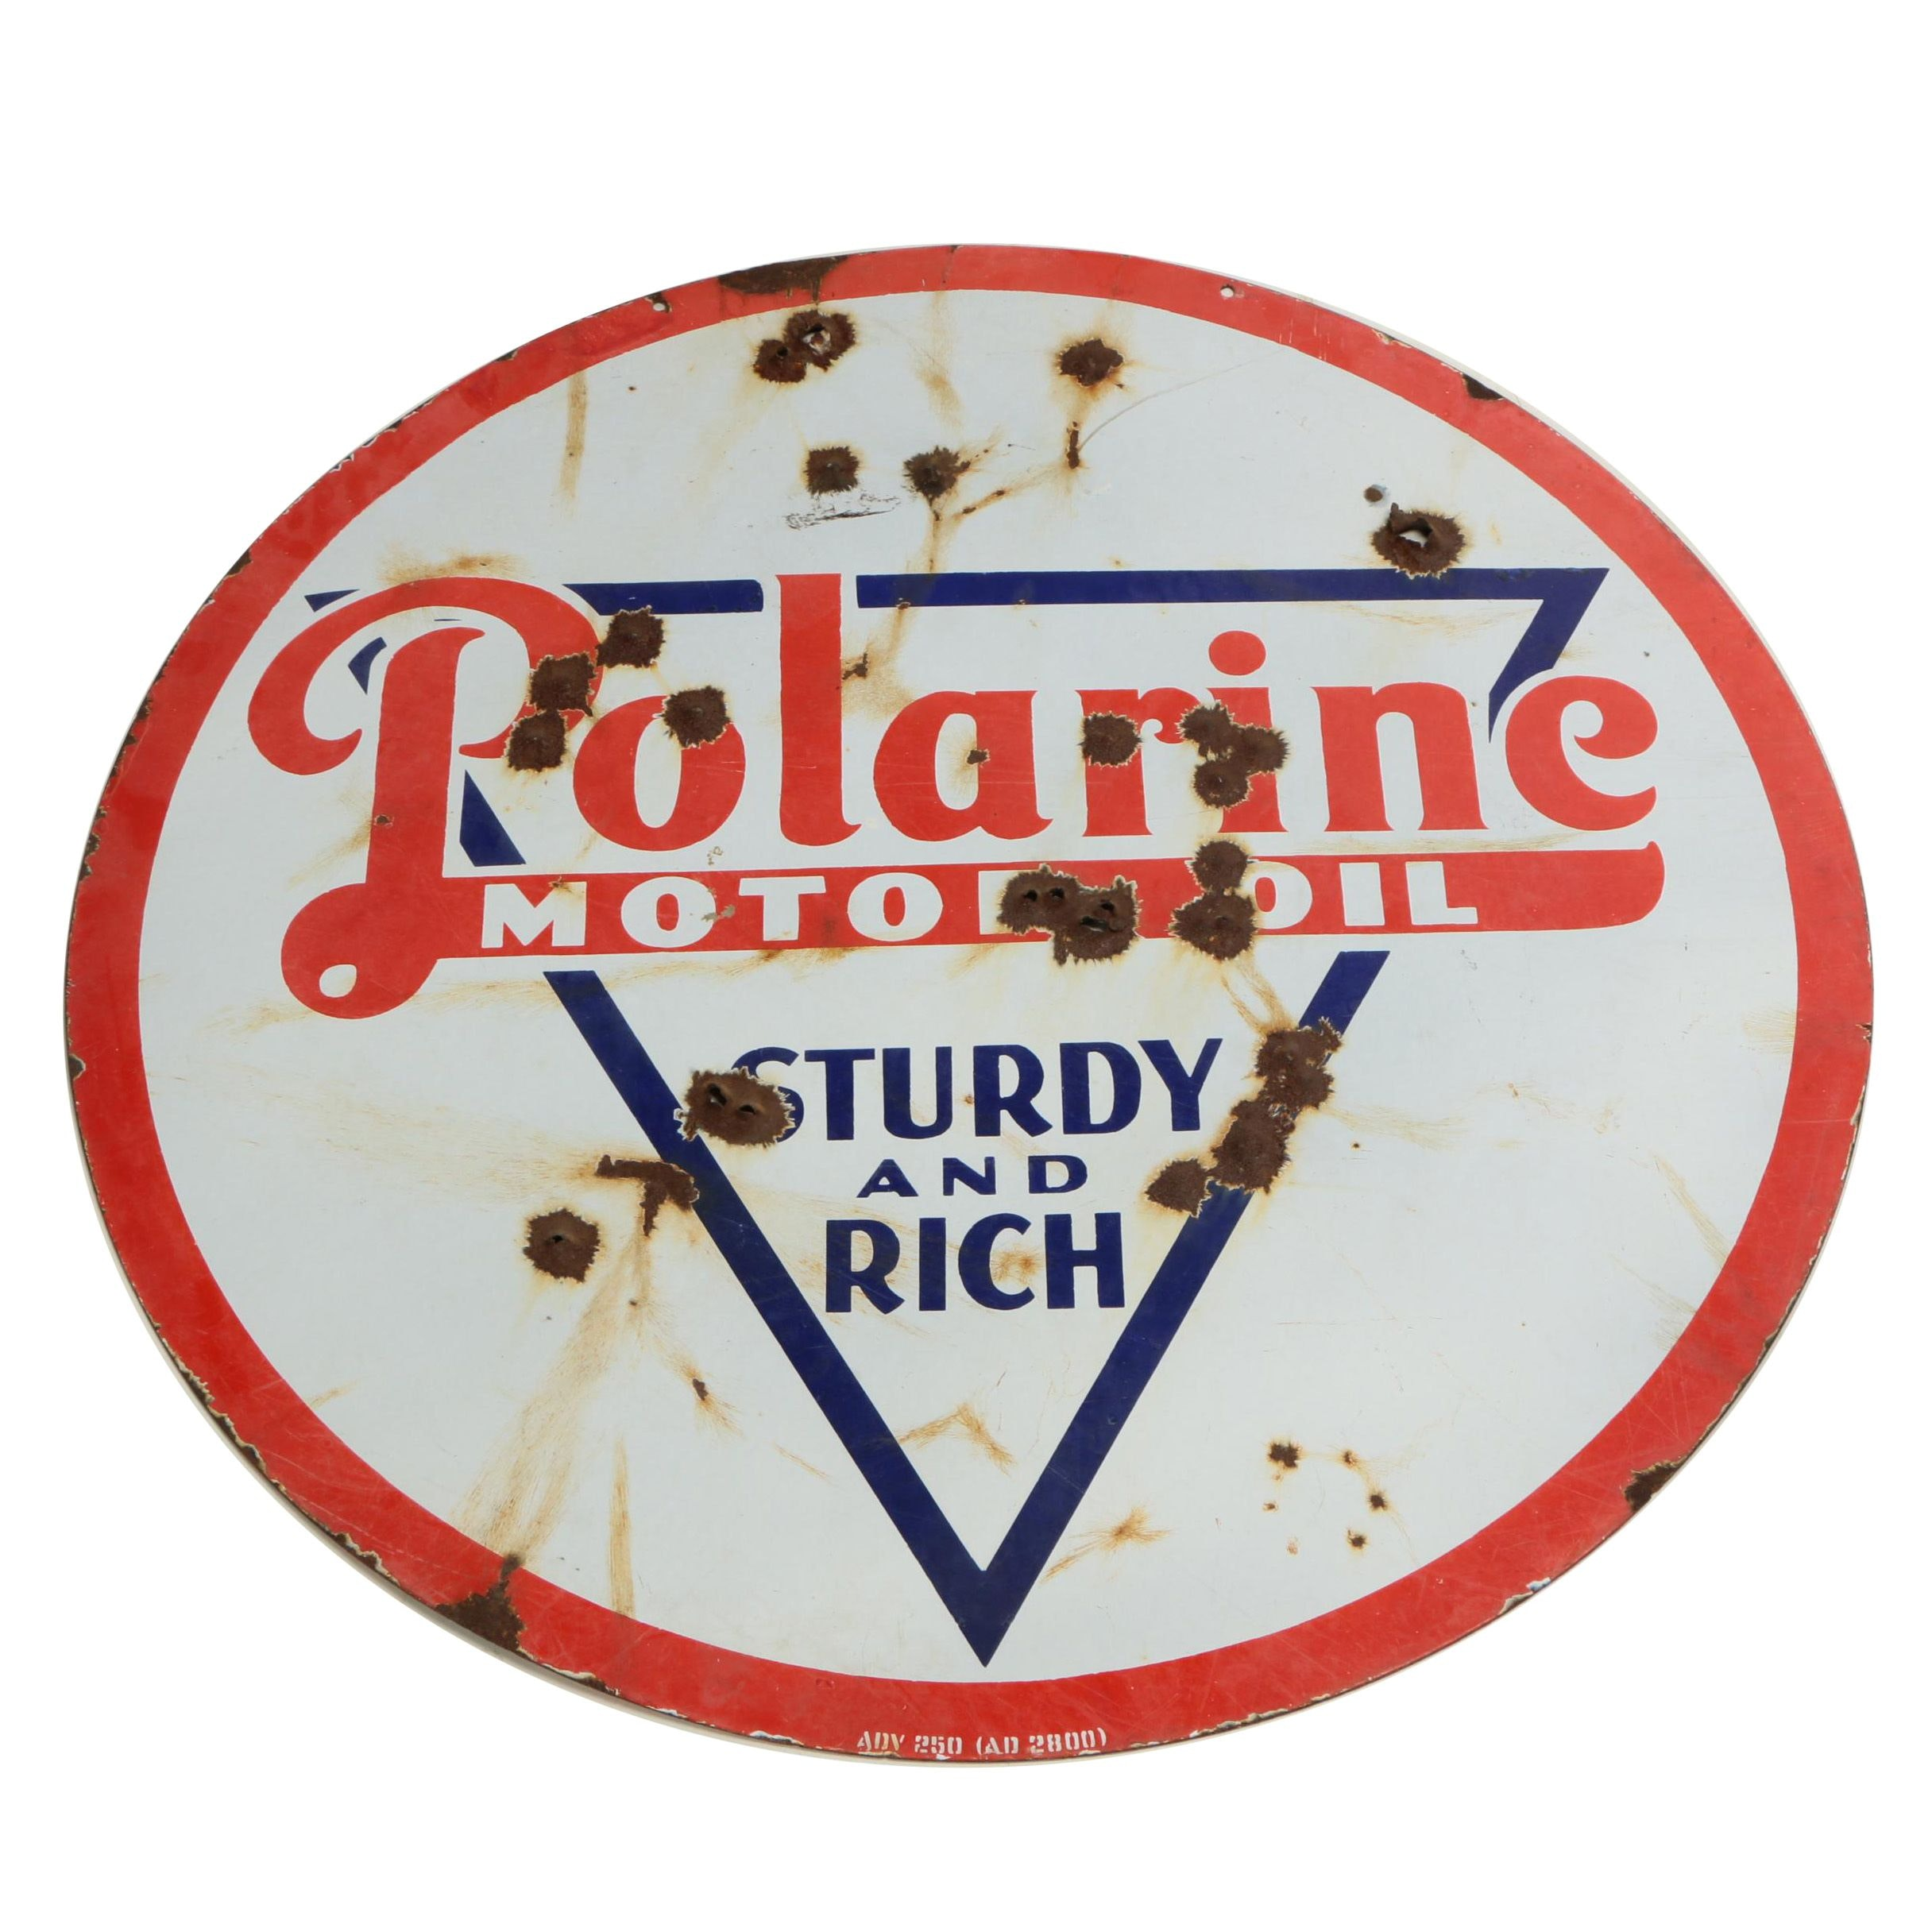 Polarine Motor Oil Enameled Metal Sign, Early 20th Century